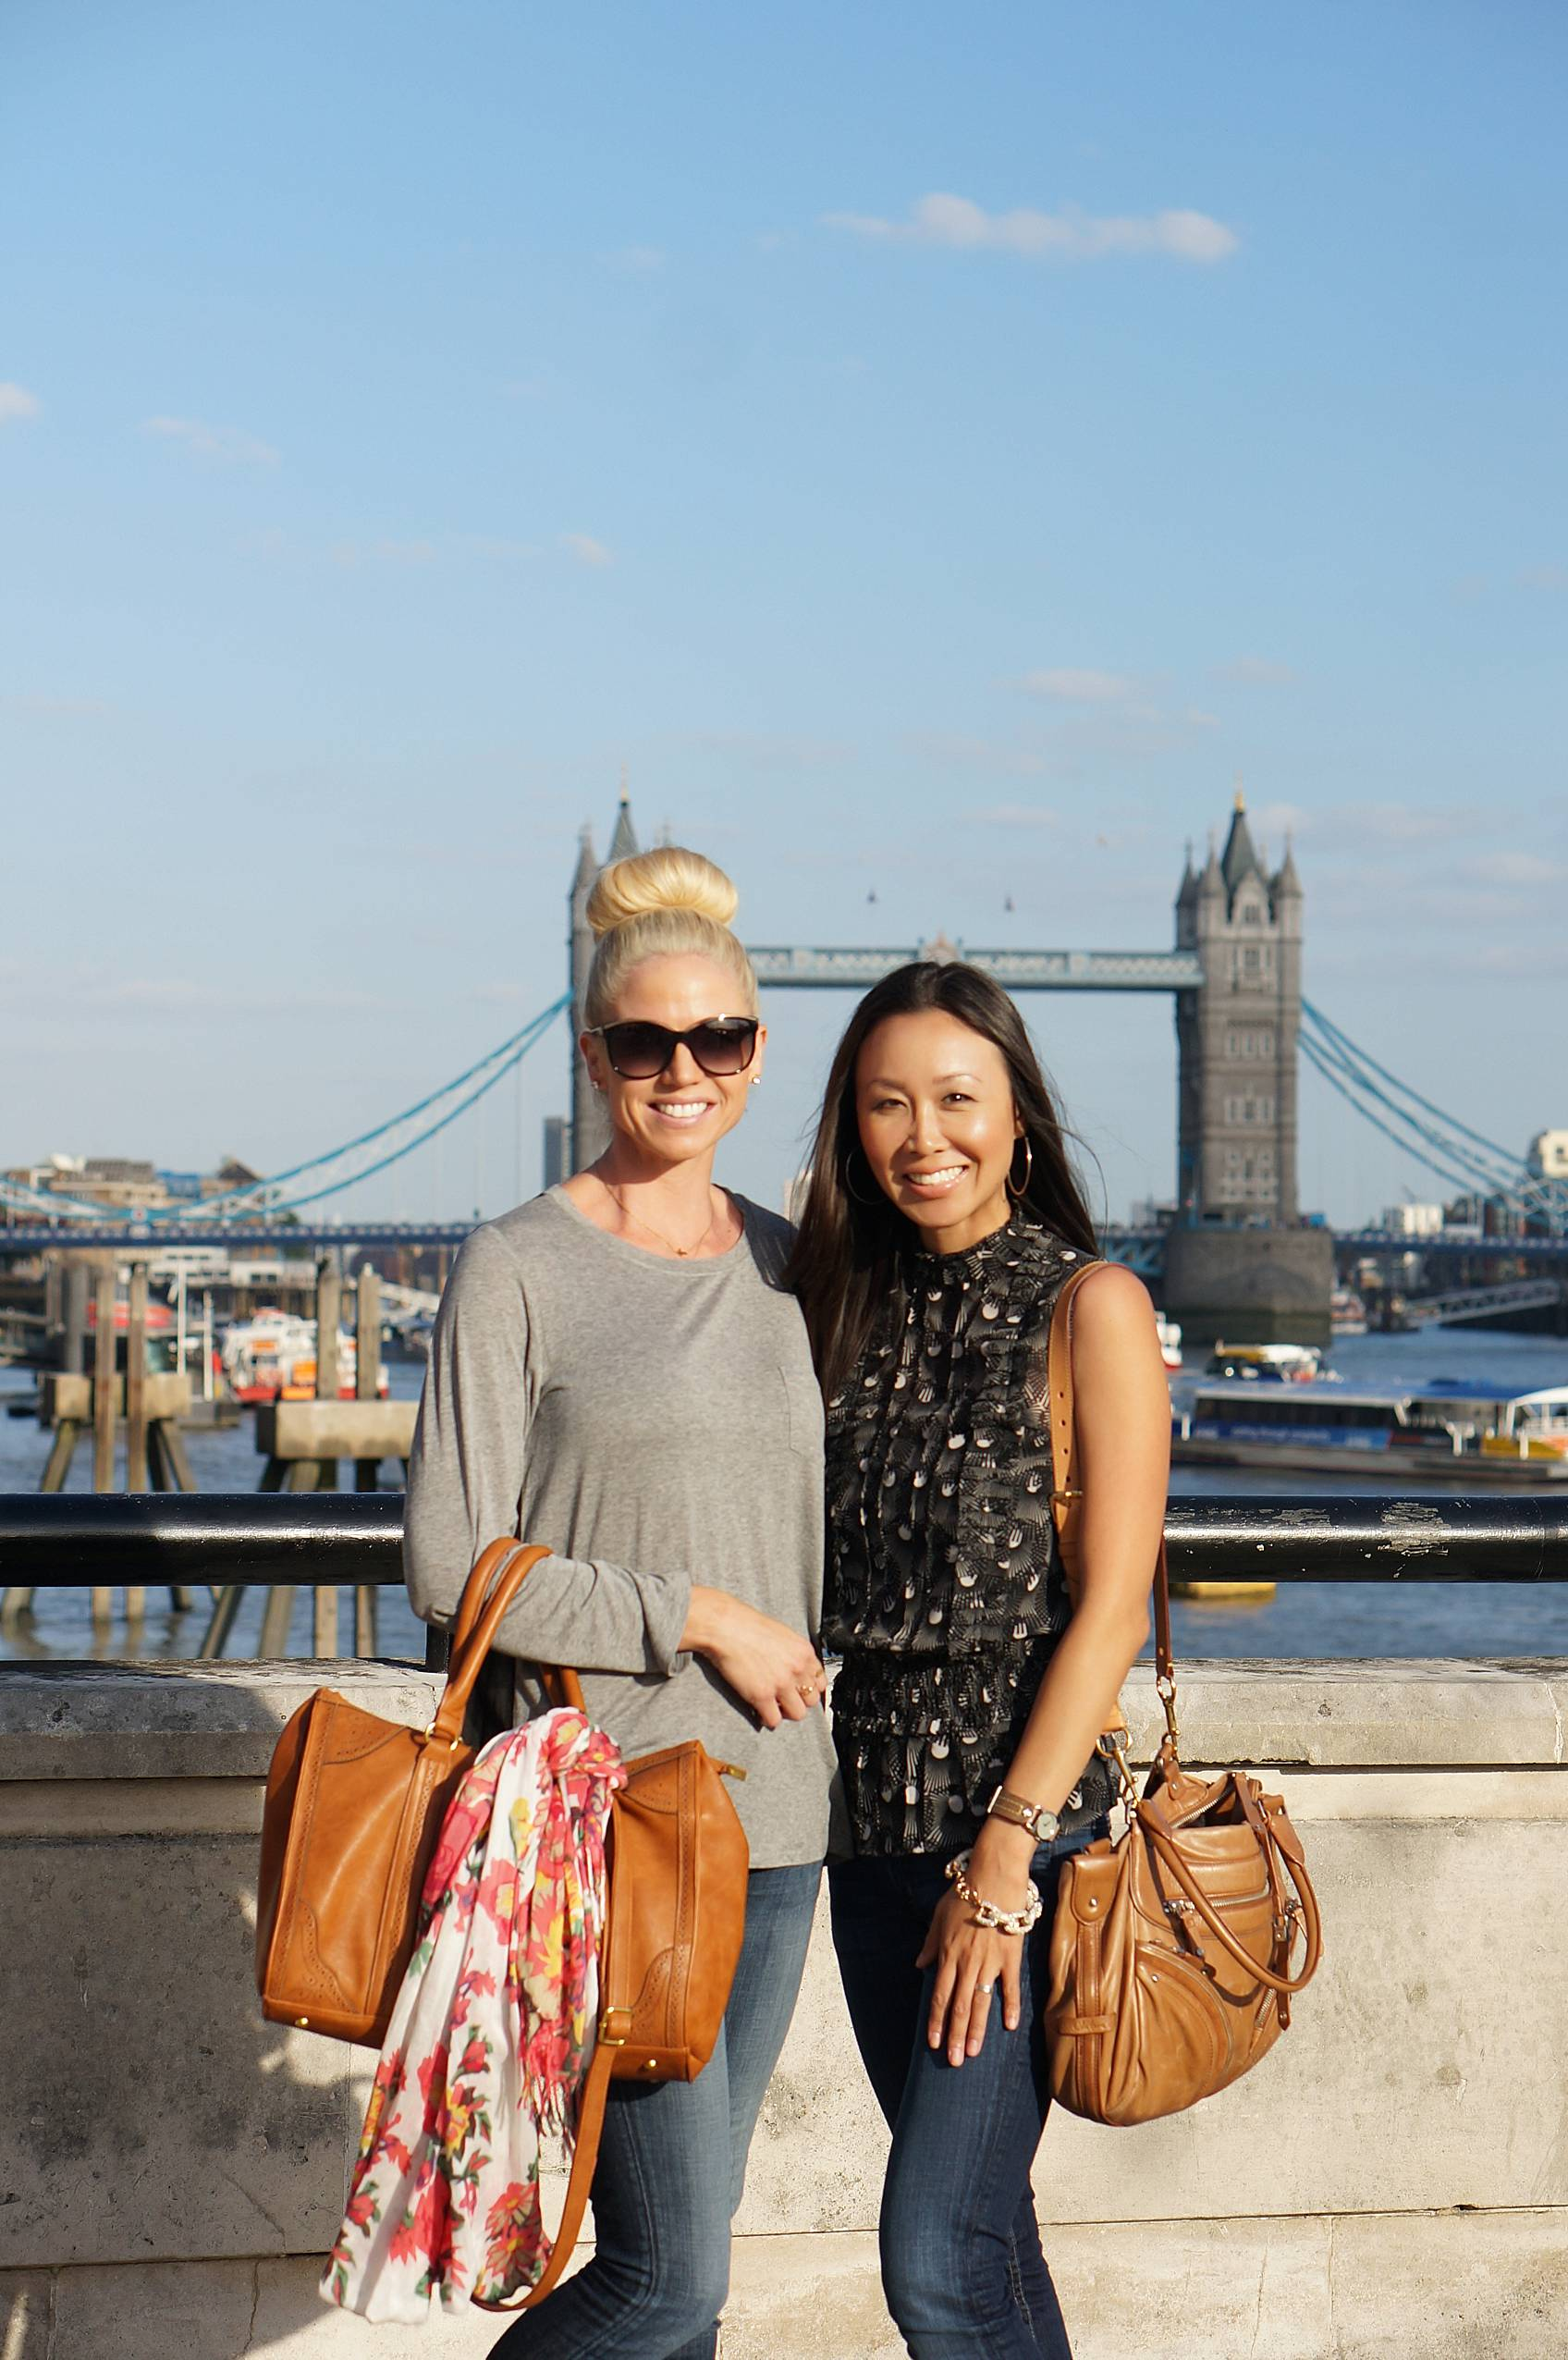 diana Elizabeth blogger with friend in front of Tower of London Bridge